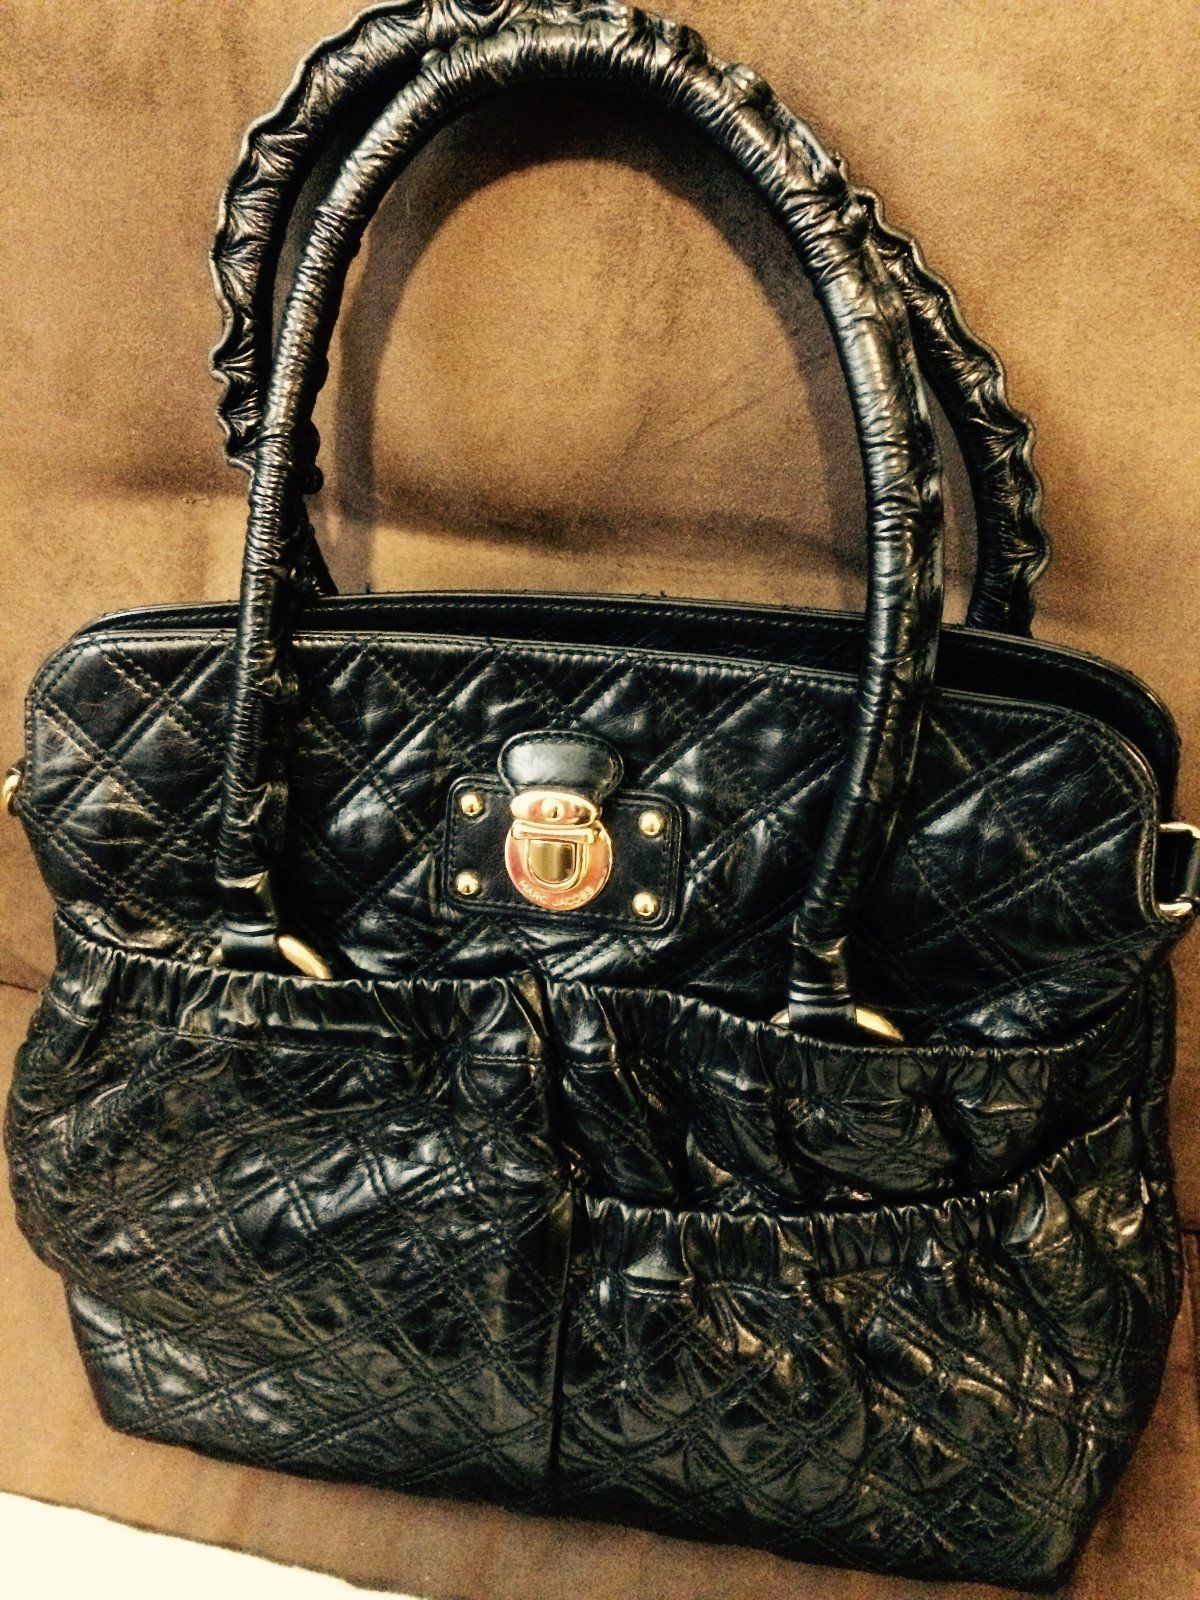 Auth Marc Jacobs Black Quilted Leather Shoulder Handbag Made In Italy Ebay